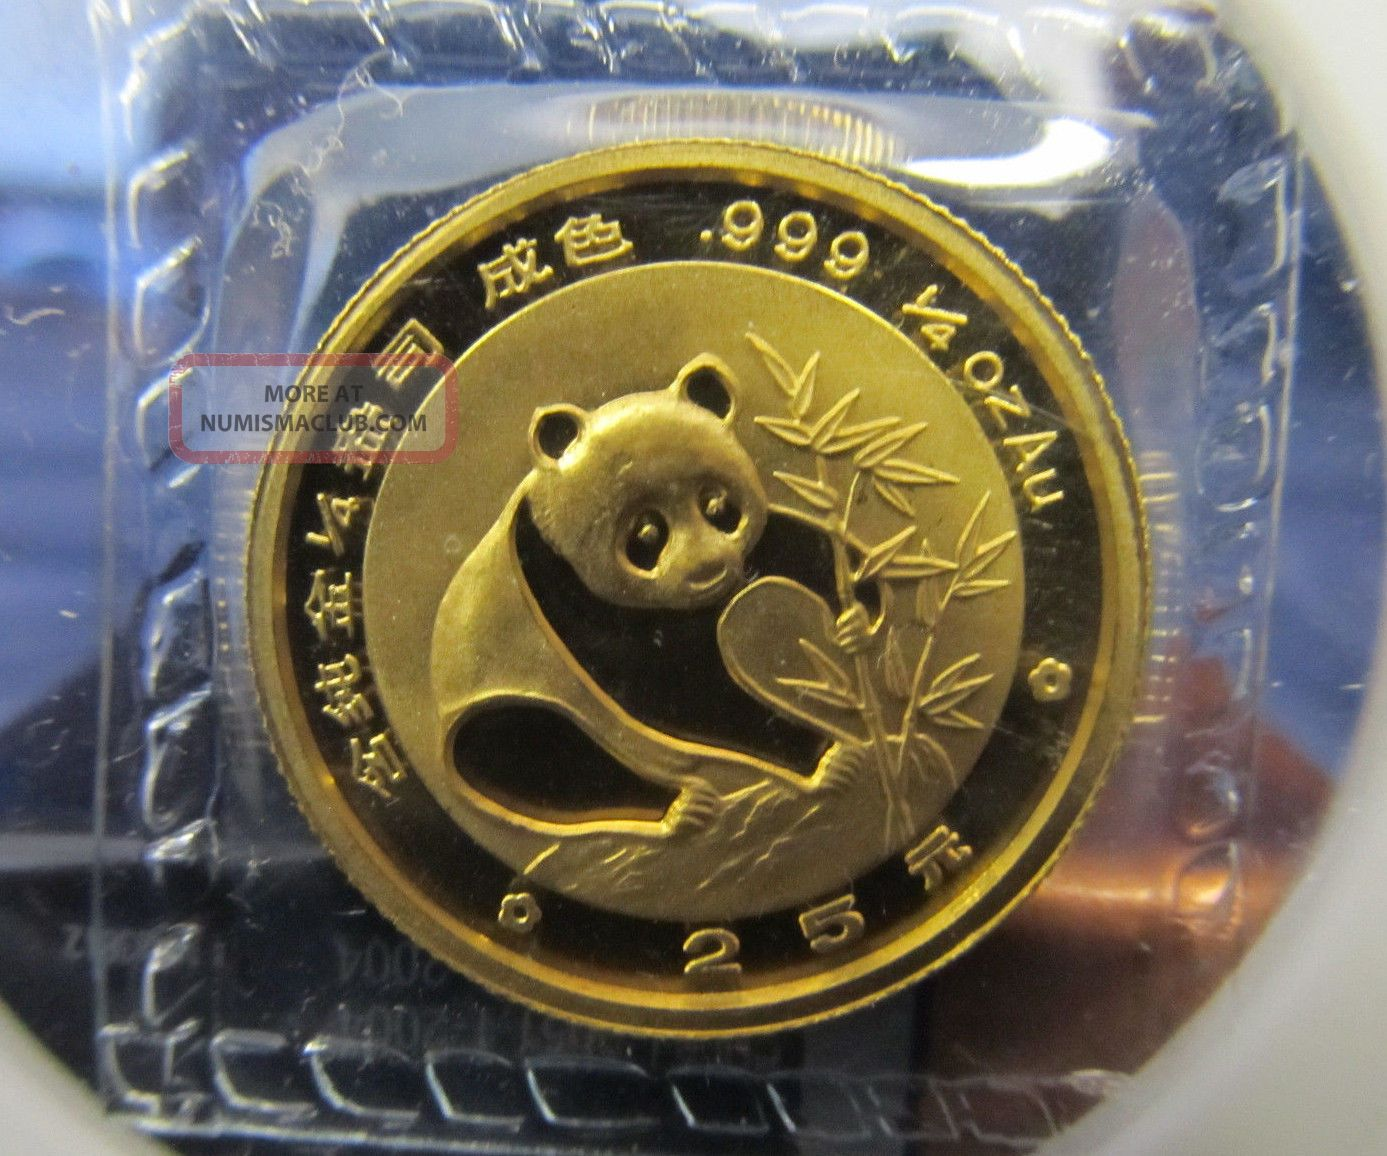 1988 25 Yuan Chinese Panda 1/4 Oz.  Gold Coin.  999 - Never Touched Gold photo